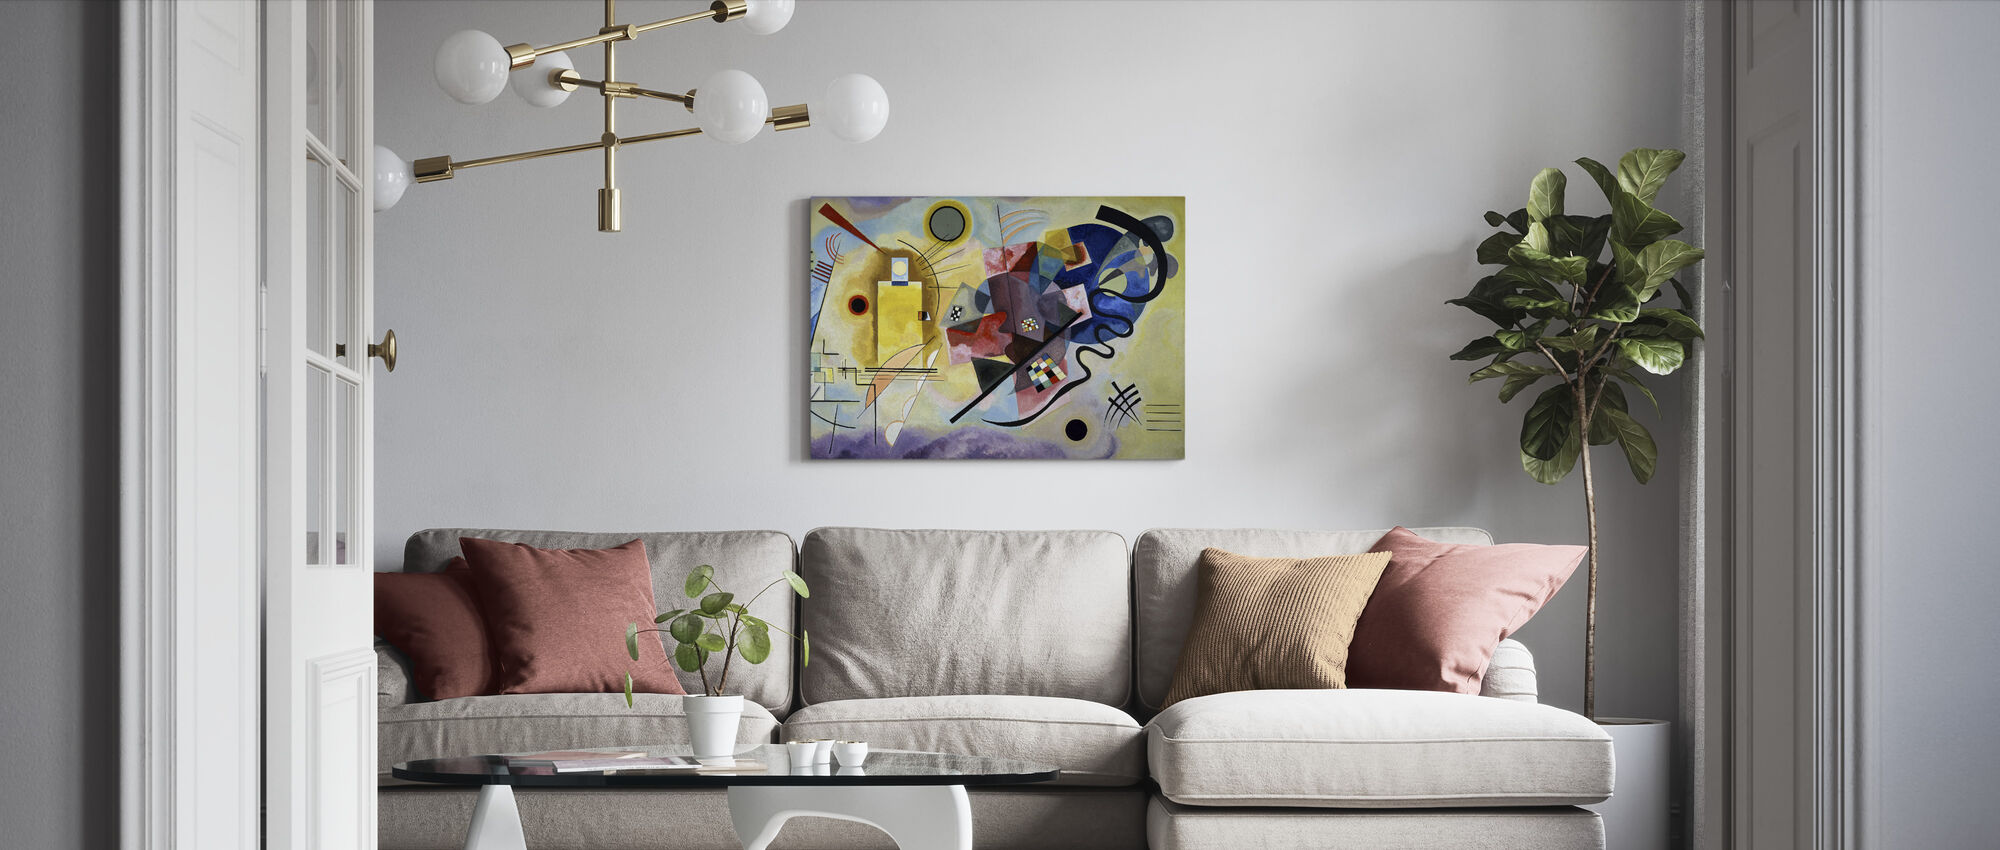 Yellow Red and Blue - Vassily Kandinsky - Canvas print - Living Room